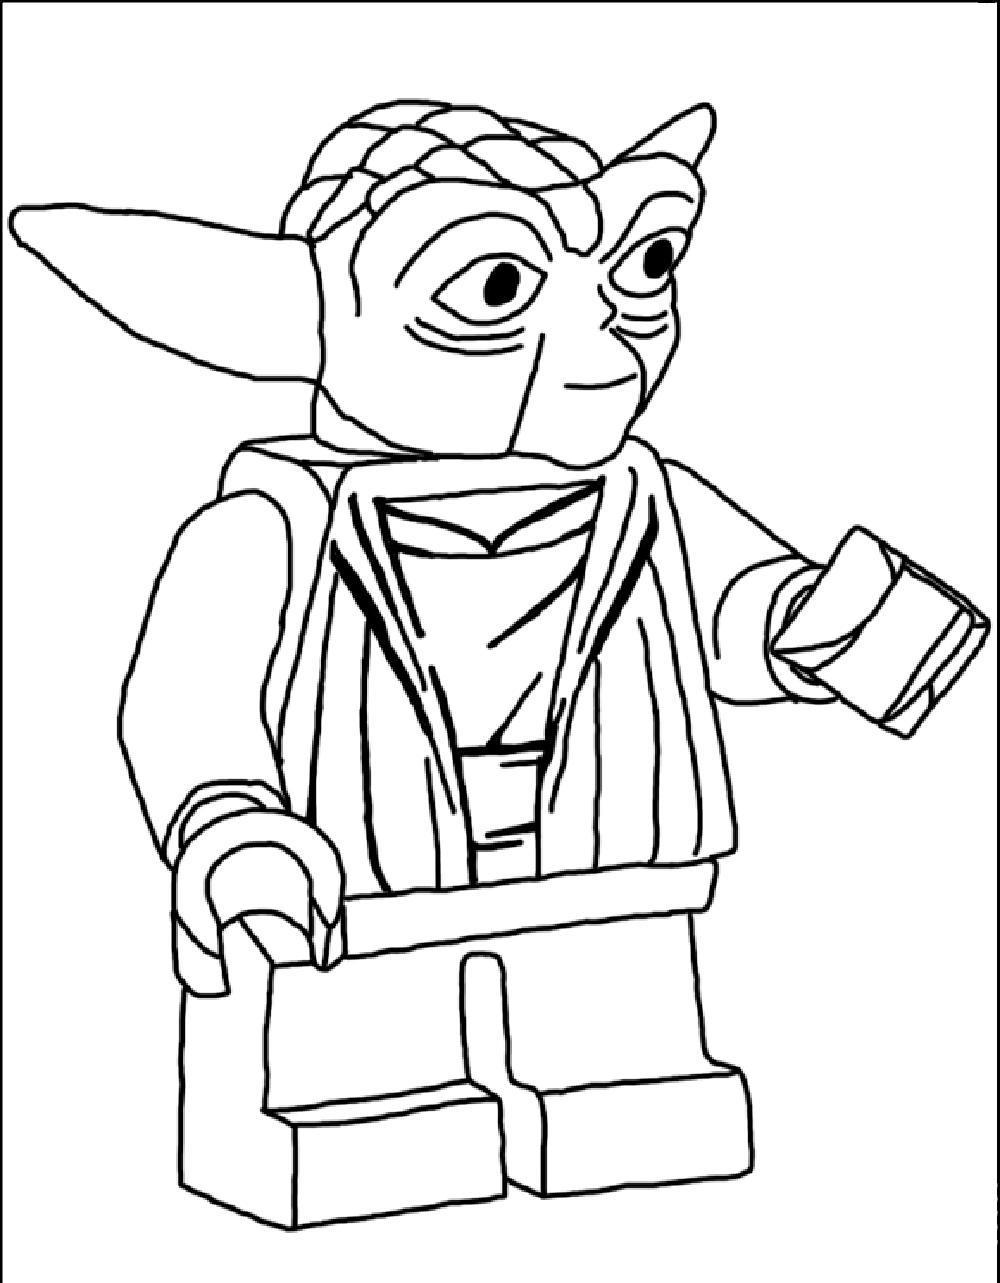 Lego Star Wars Coloring Pages To Print at GetDrawings.com | Free for ...